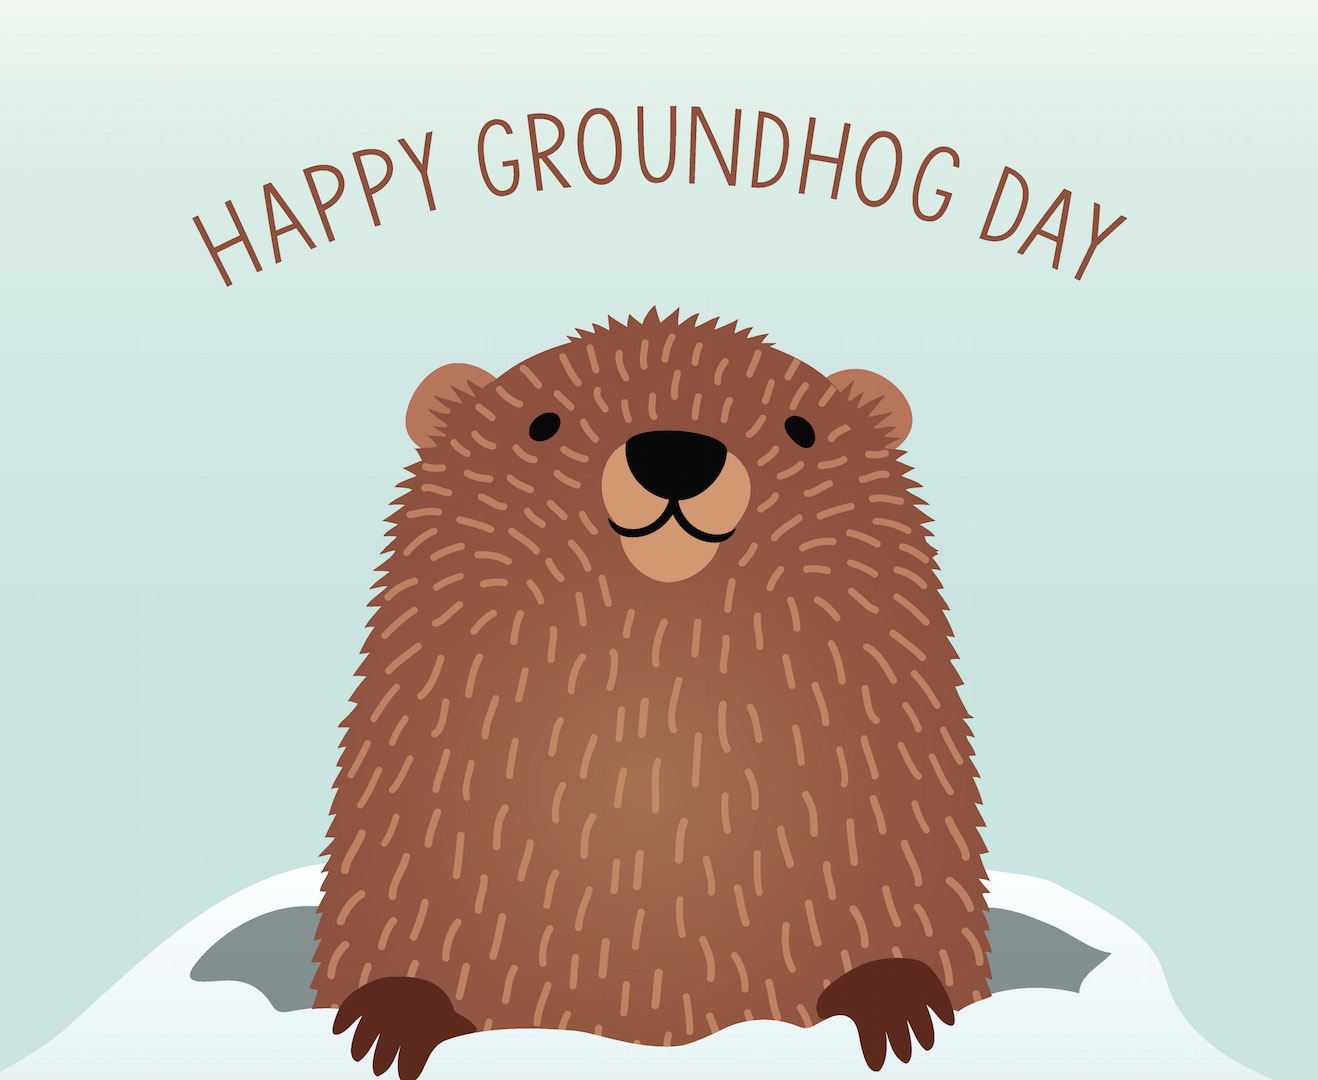 groundhog day events in northeast ohio